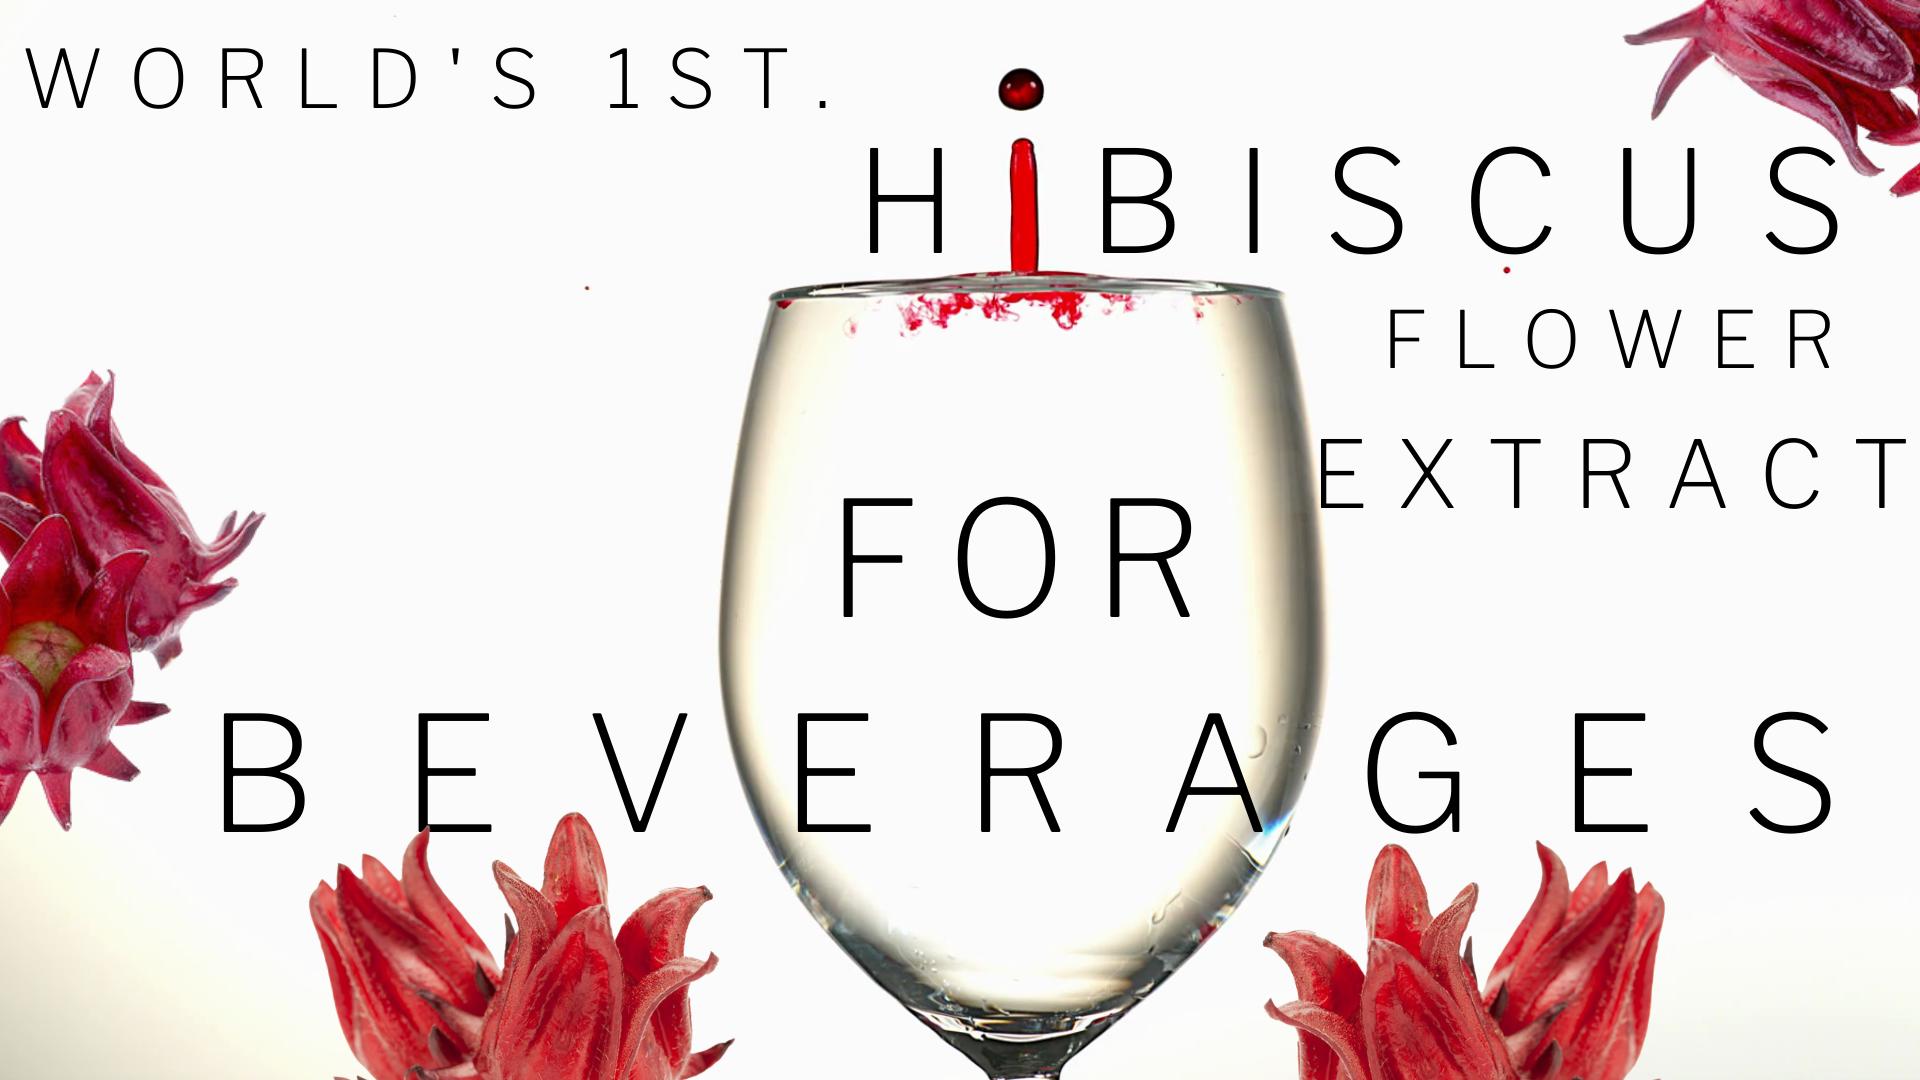 Hibiscus Farm: World's 1st. Hibiscus Flower Extract for Beverages